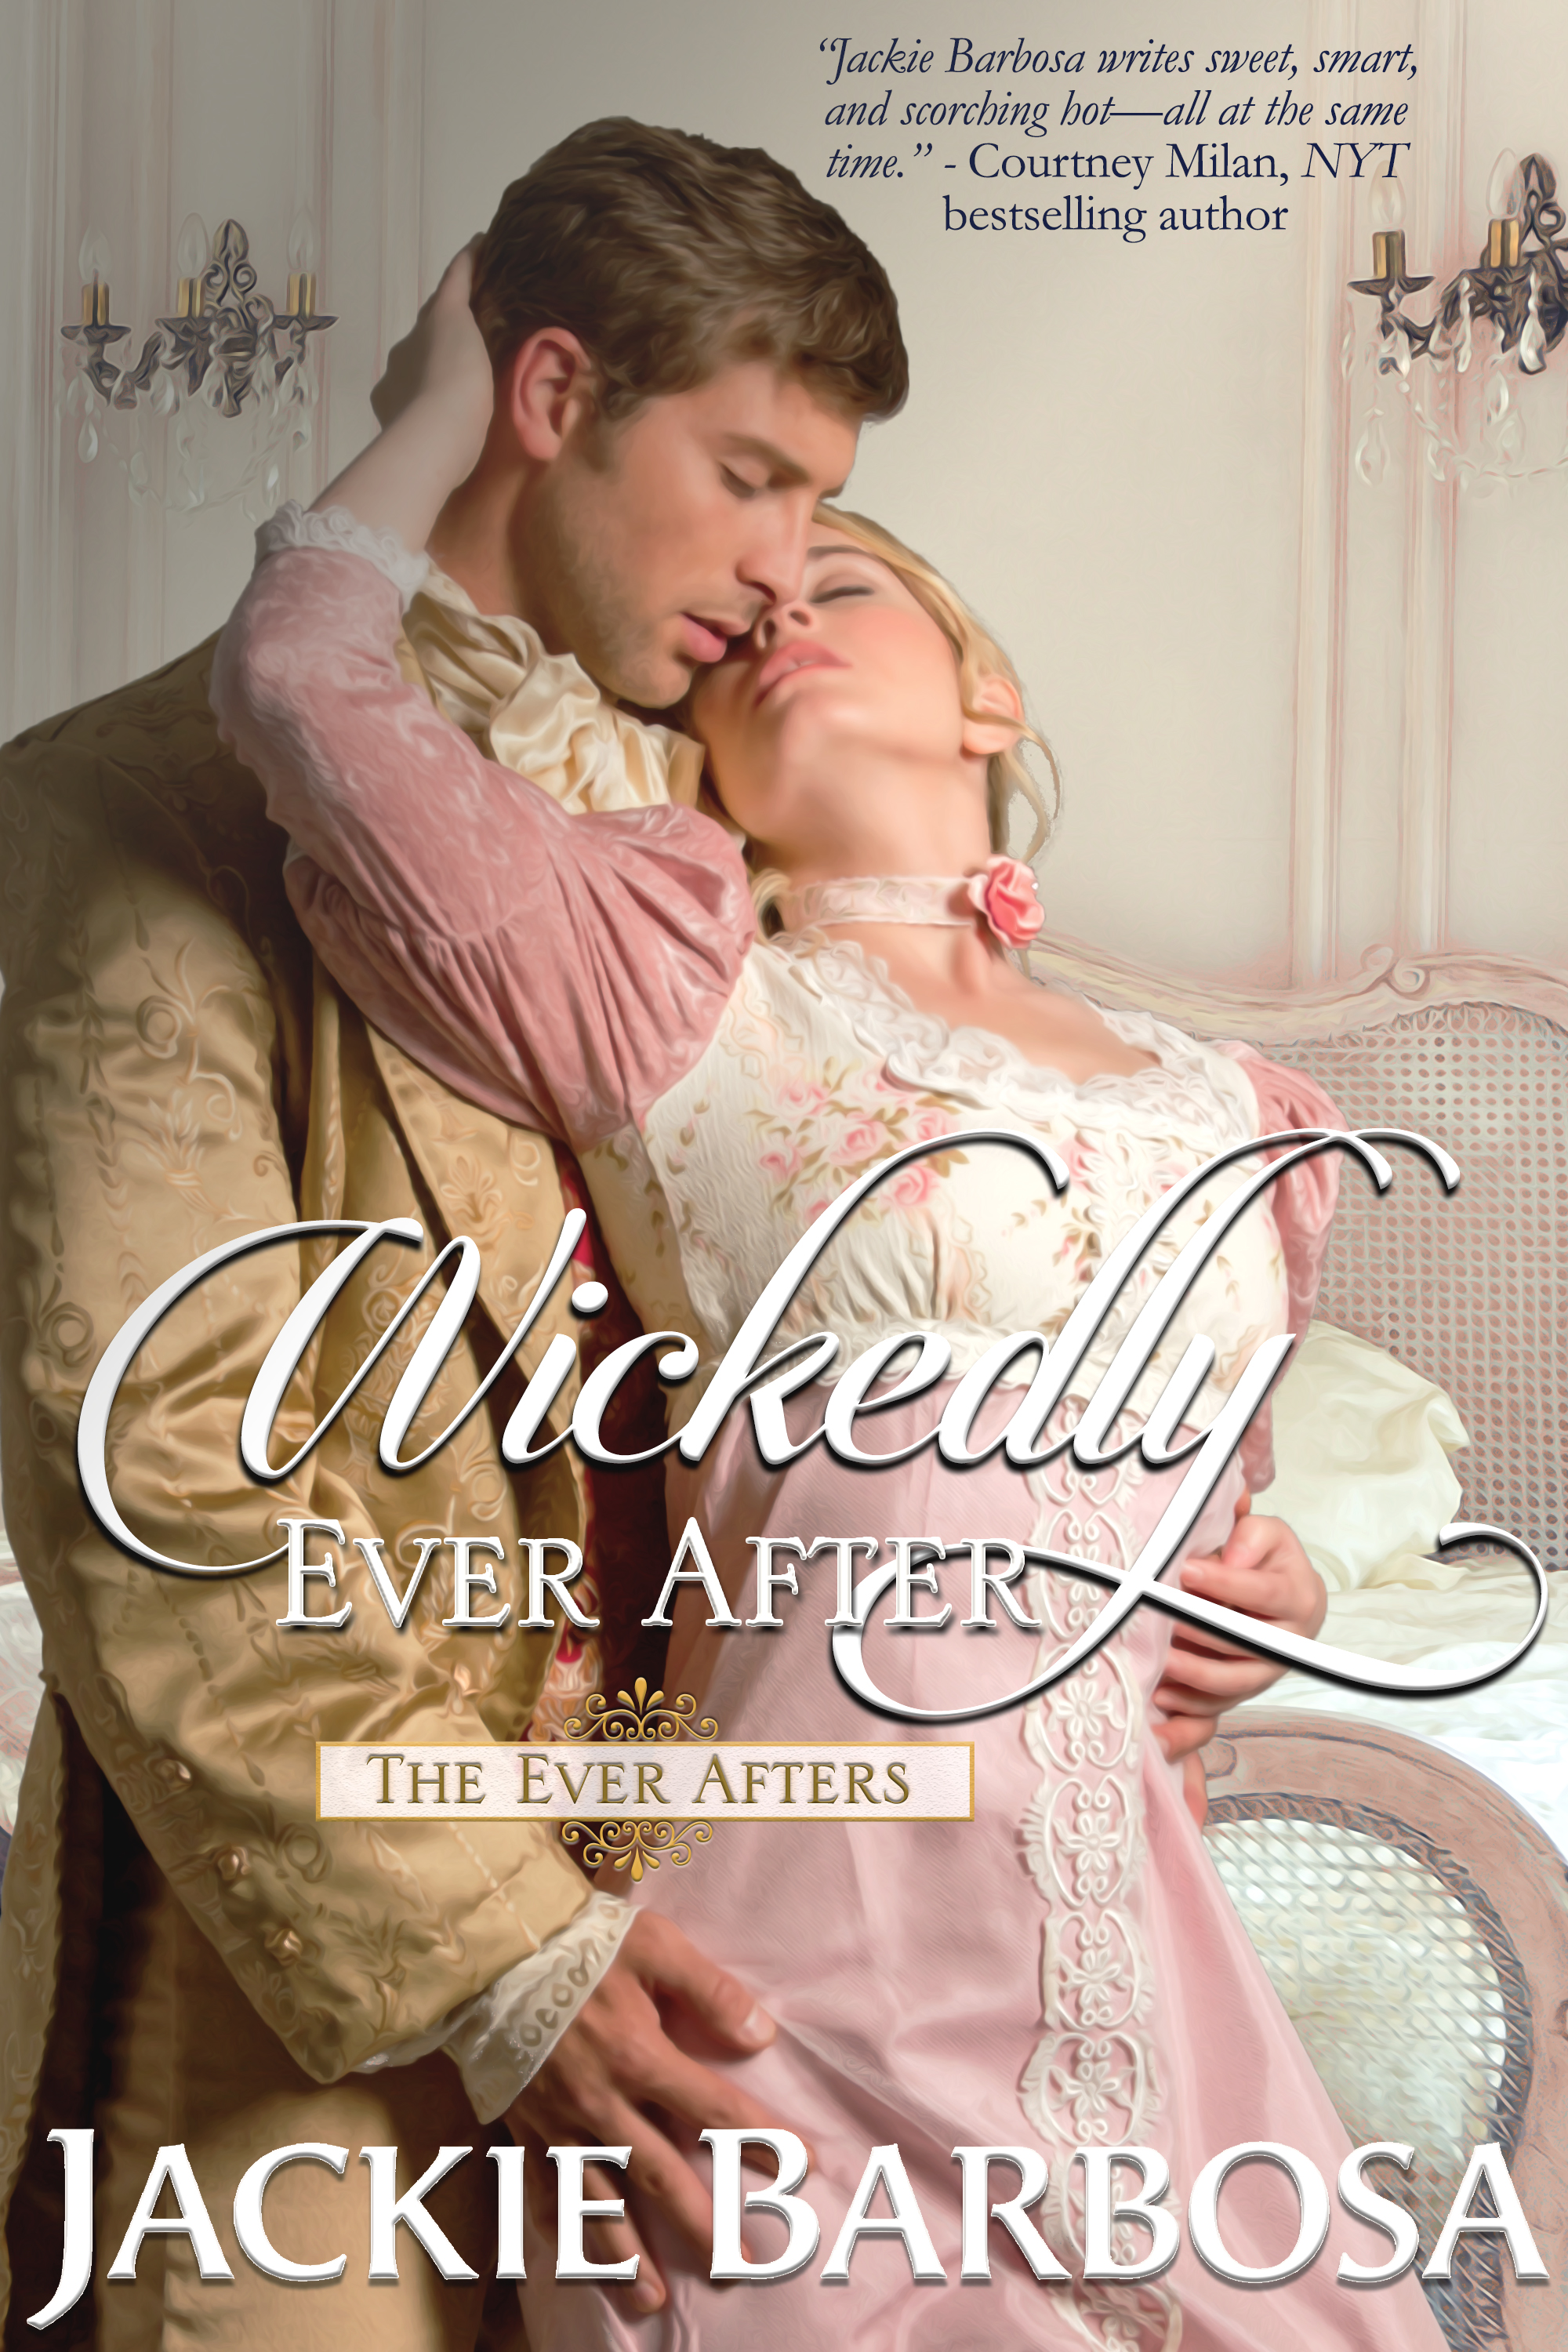 Wickedly Ever After by Jackie Barbosa